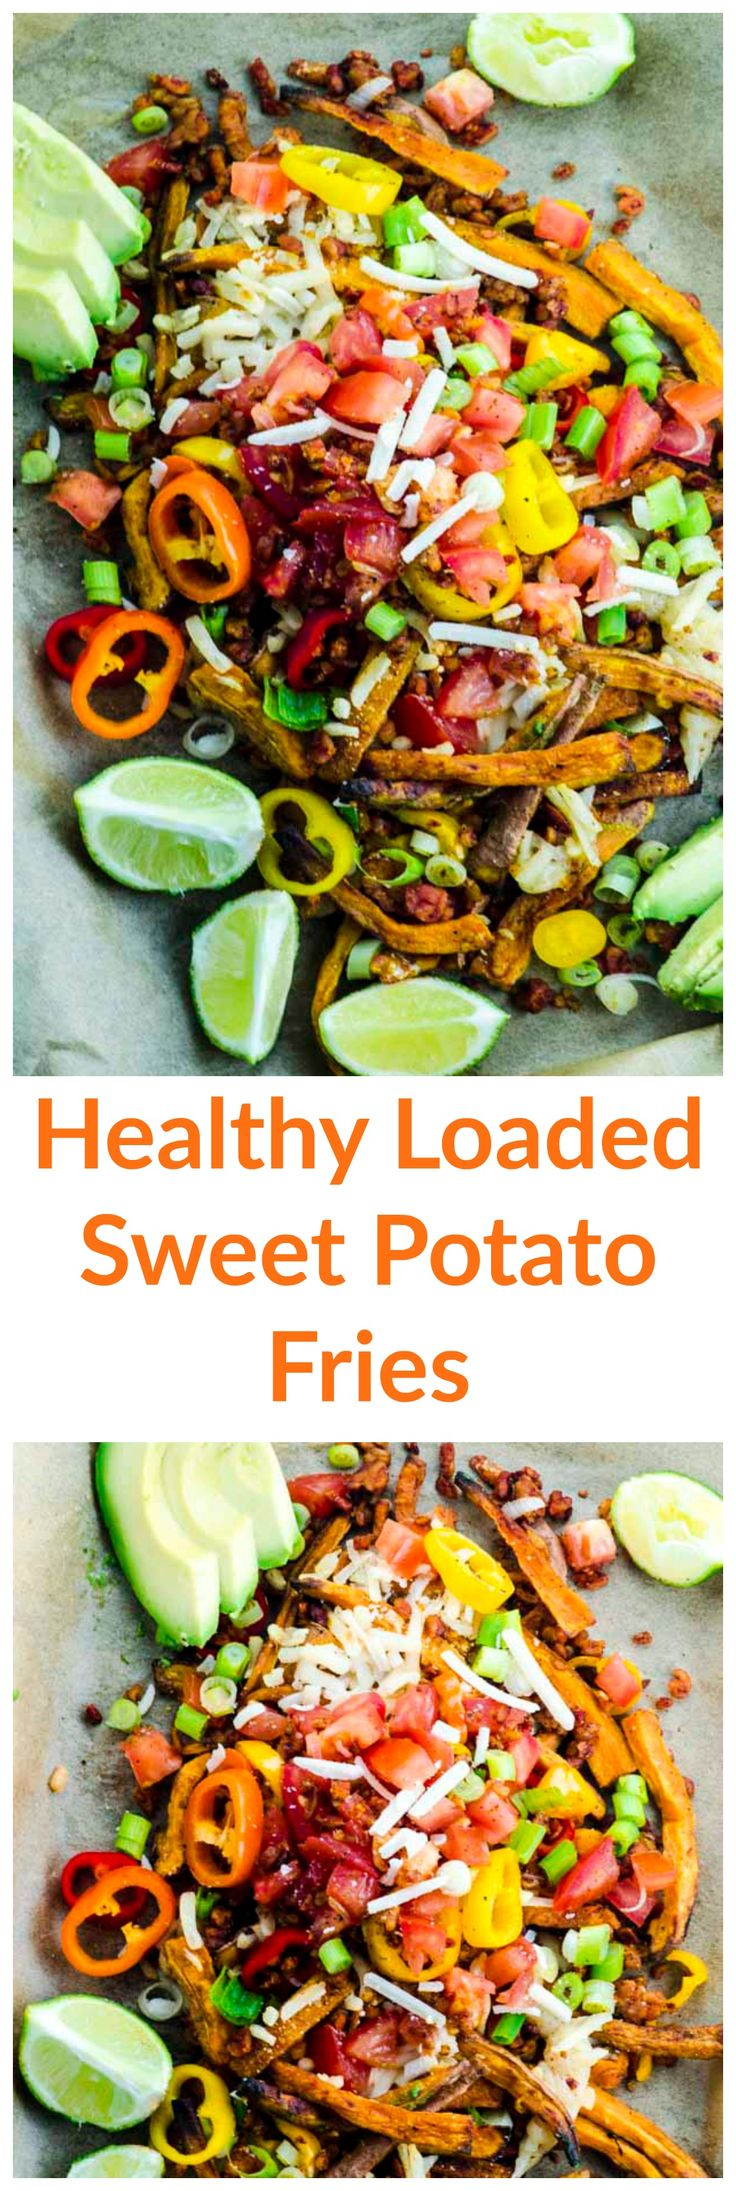 These Healthy Loaded Sweet Potato  Fries are delicious way to indulge responsibly on game day, or next time you're entertaining!